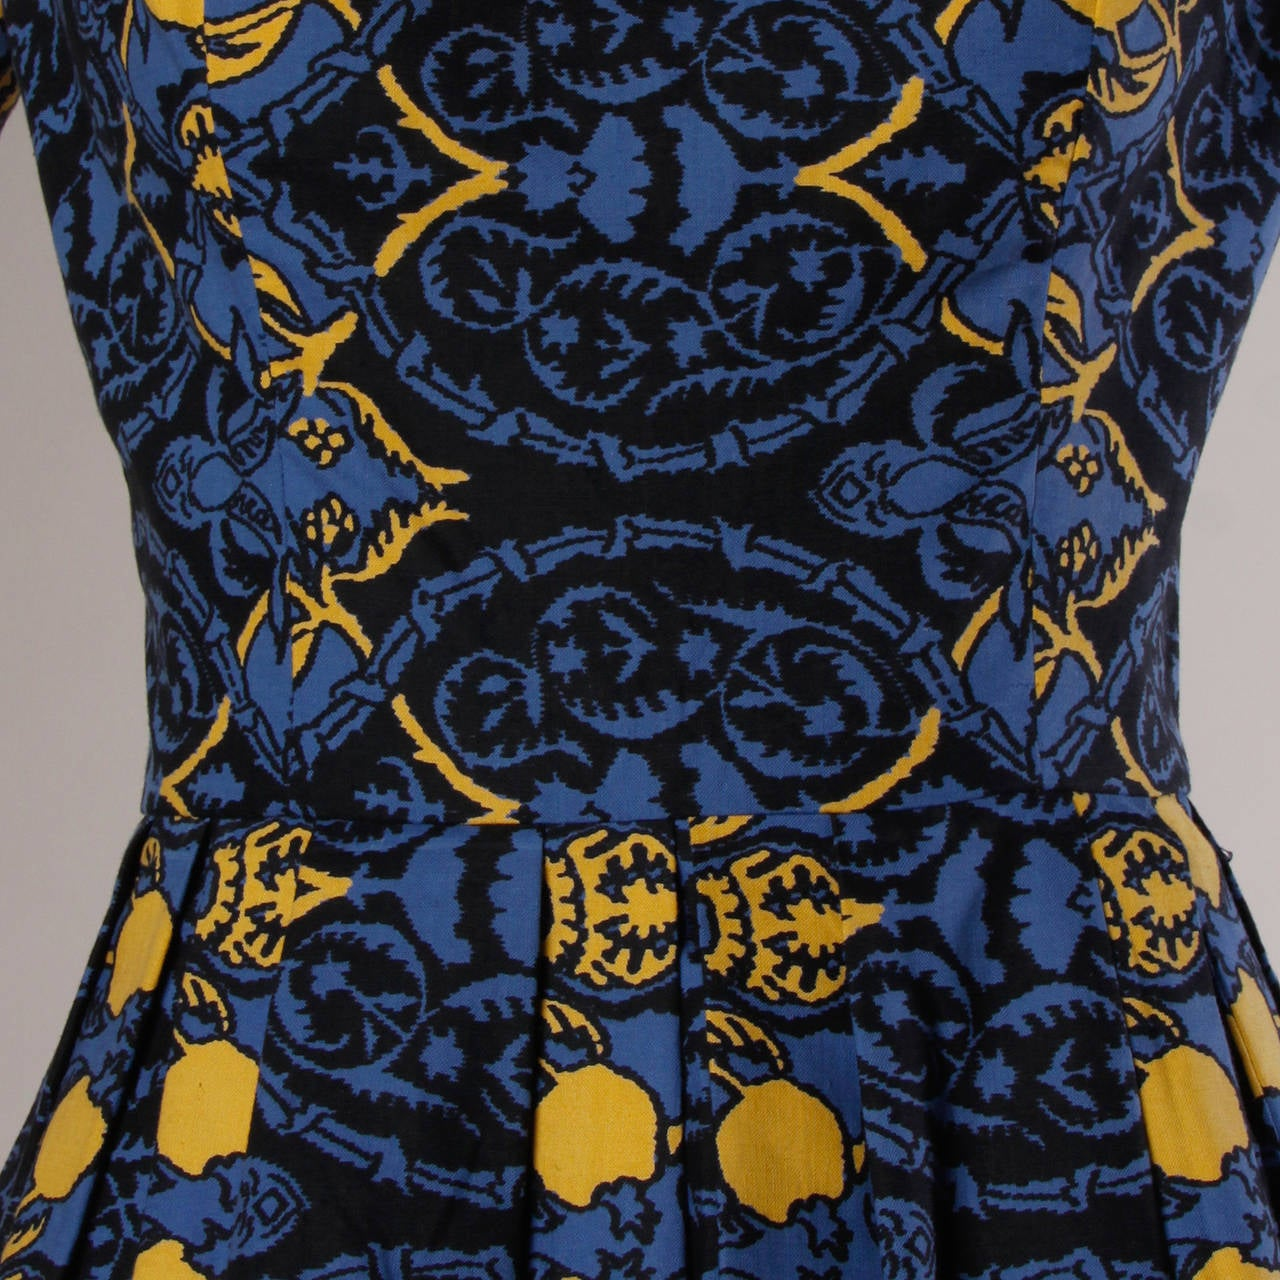 1950s Vintage French Custom Provincial Printed Cotton Dress 5